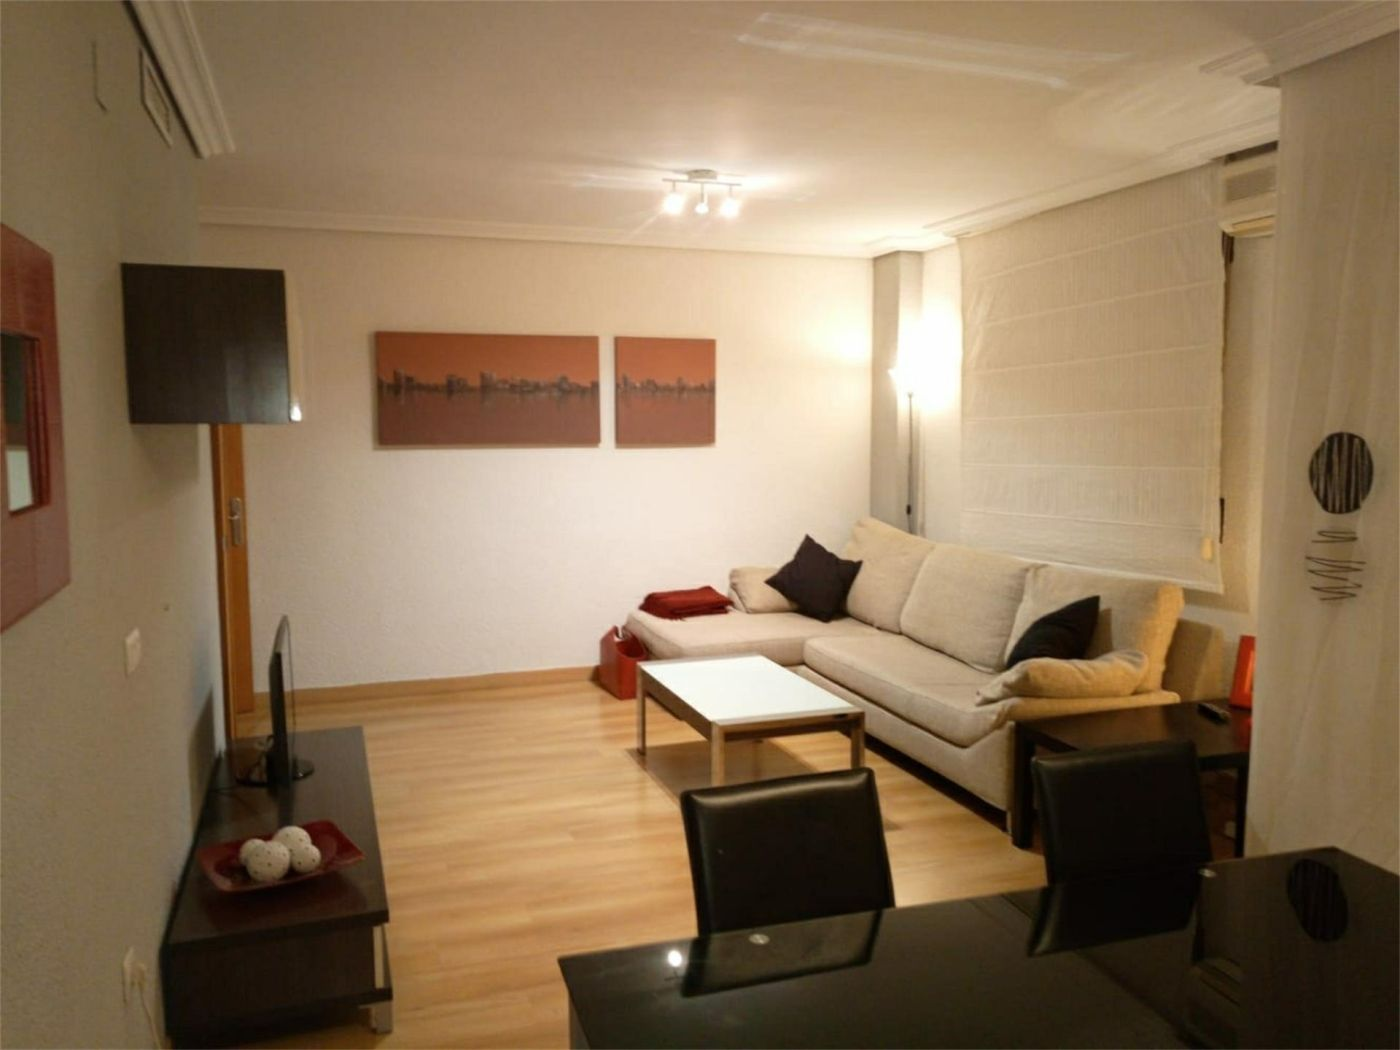 Rent Flat in Calle veterinario josep corella, 9. Zona ausias march / calle veterinario josep corell